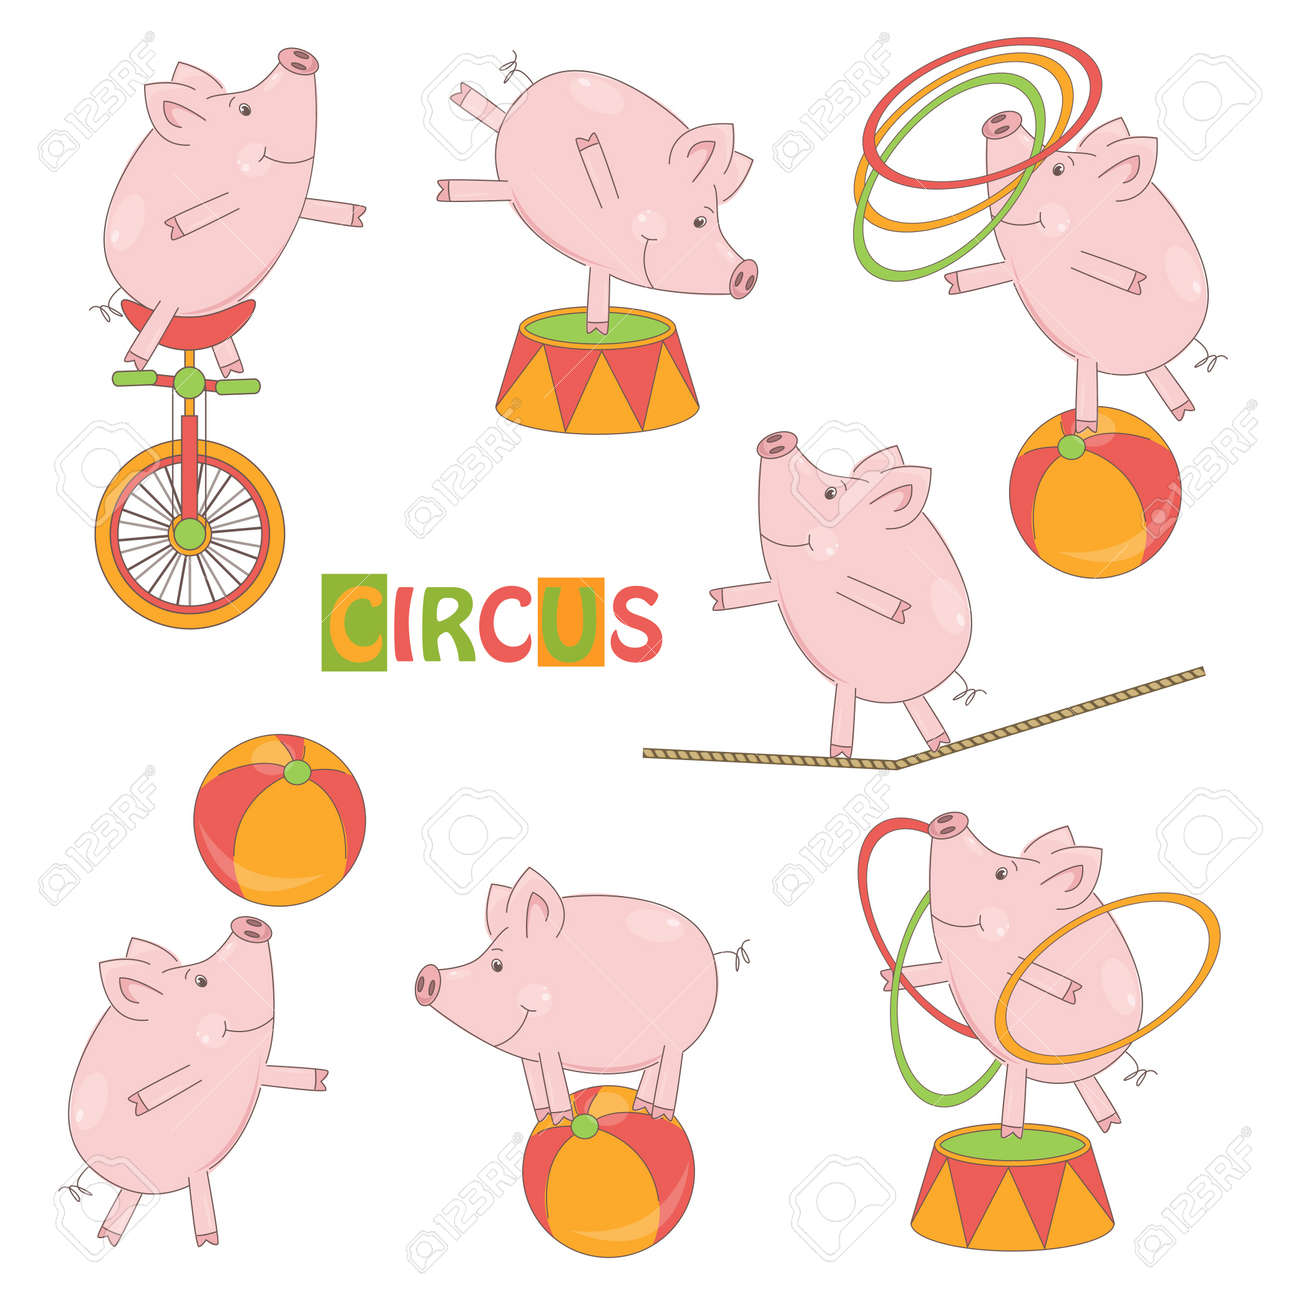 Collection of cute circus little pig on white background  Vector illustration Stock Vector - 19455932